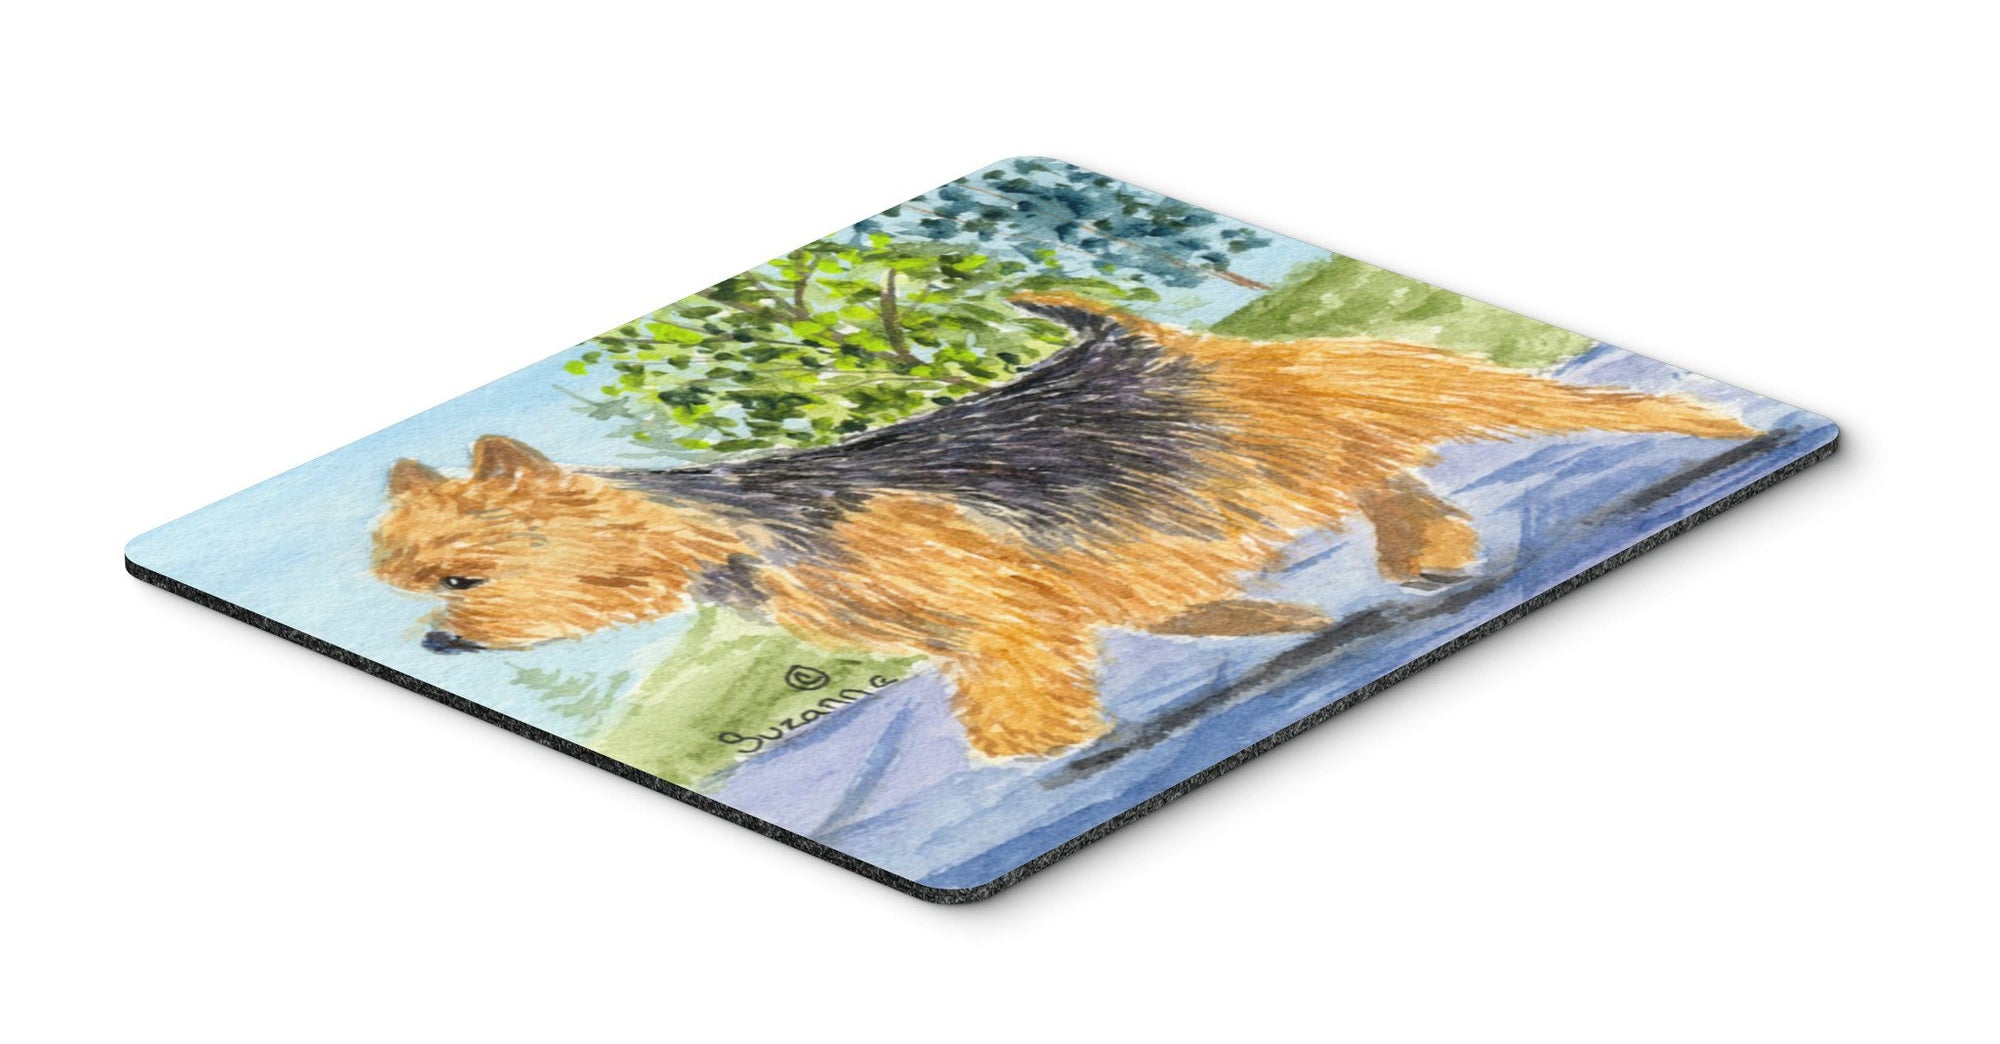 Norwich Terrier Mouse pad, hot pad, or trivet by Caroline's Treasures